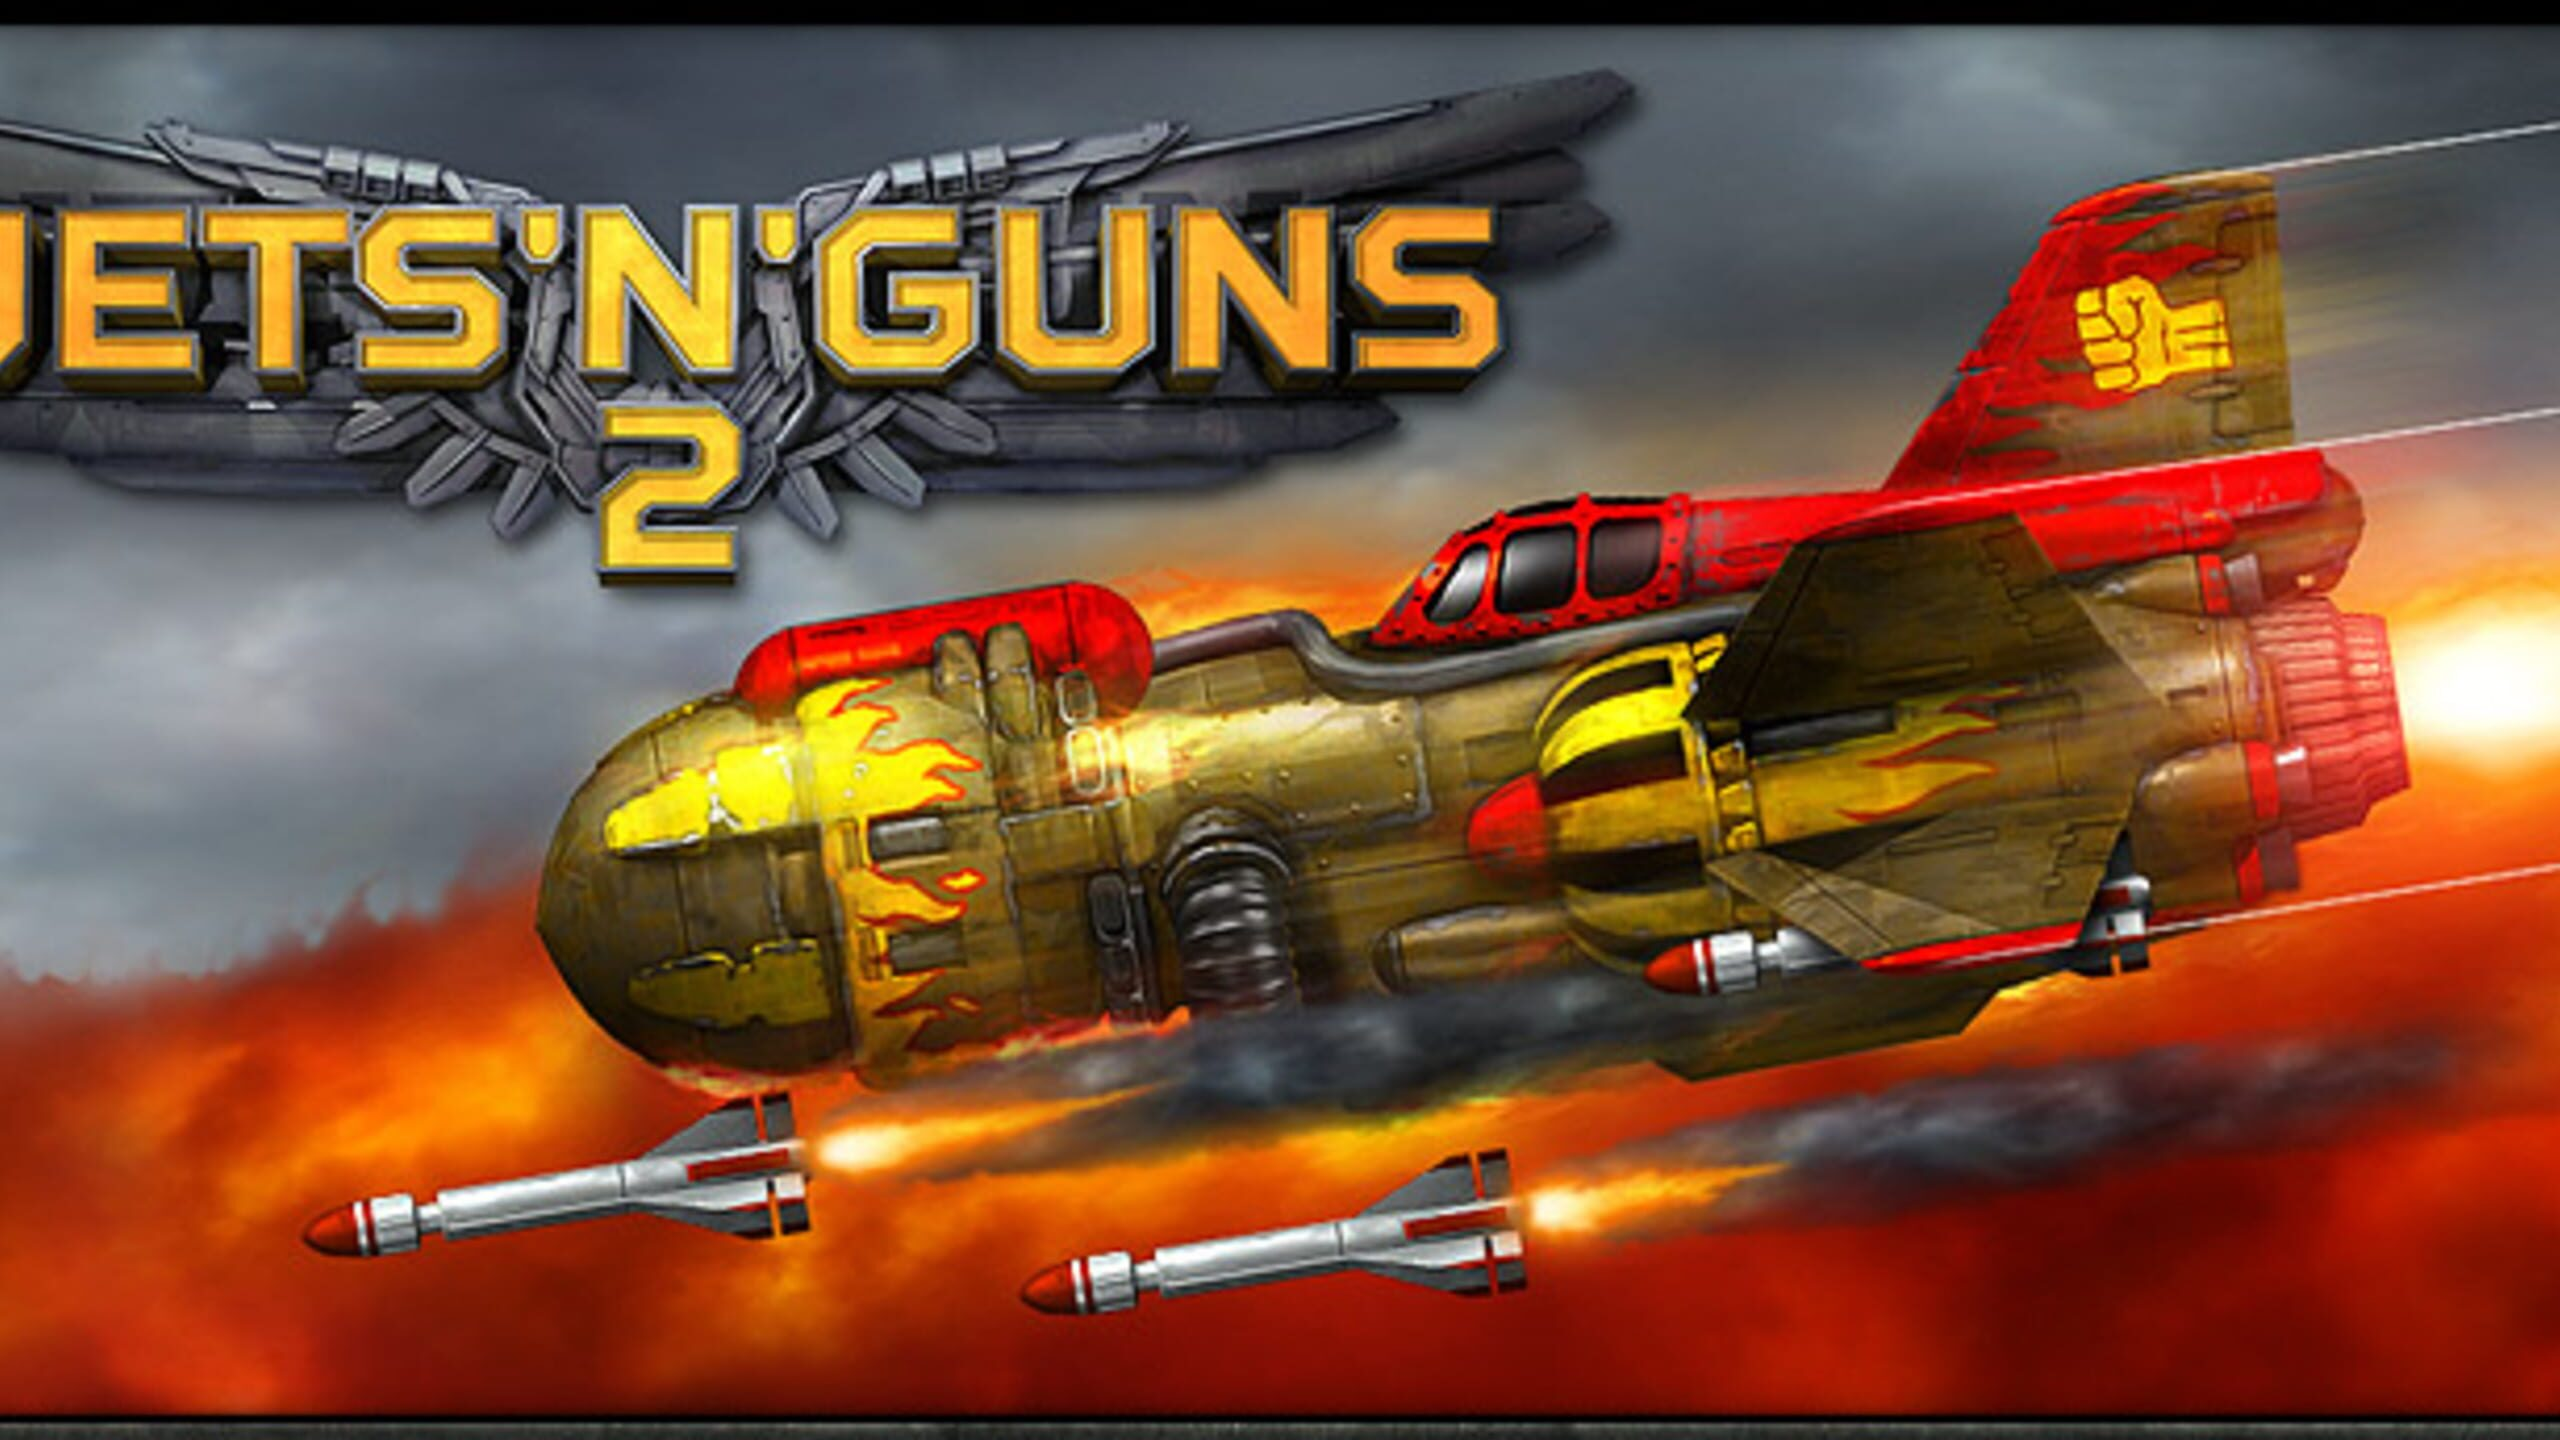 game cover art for Jets'n'Guns 2